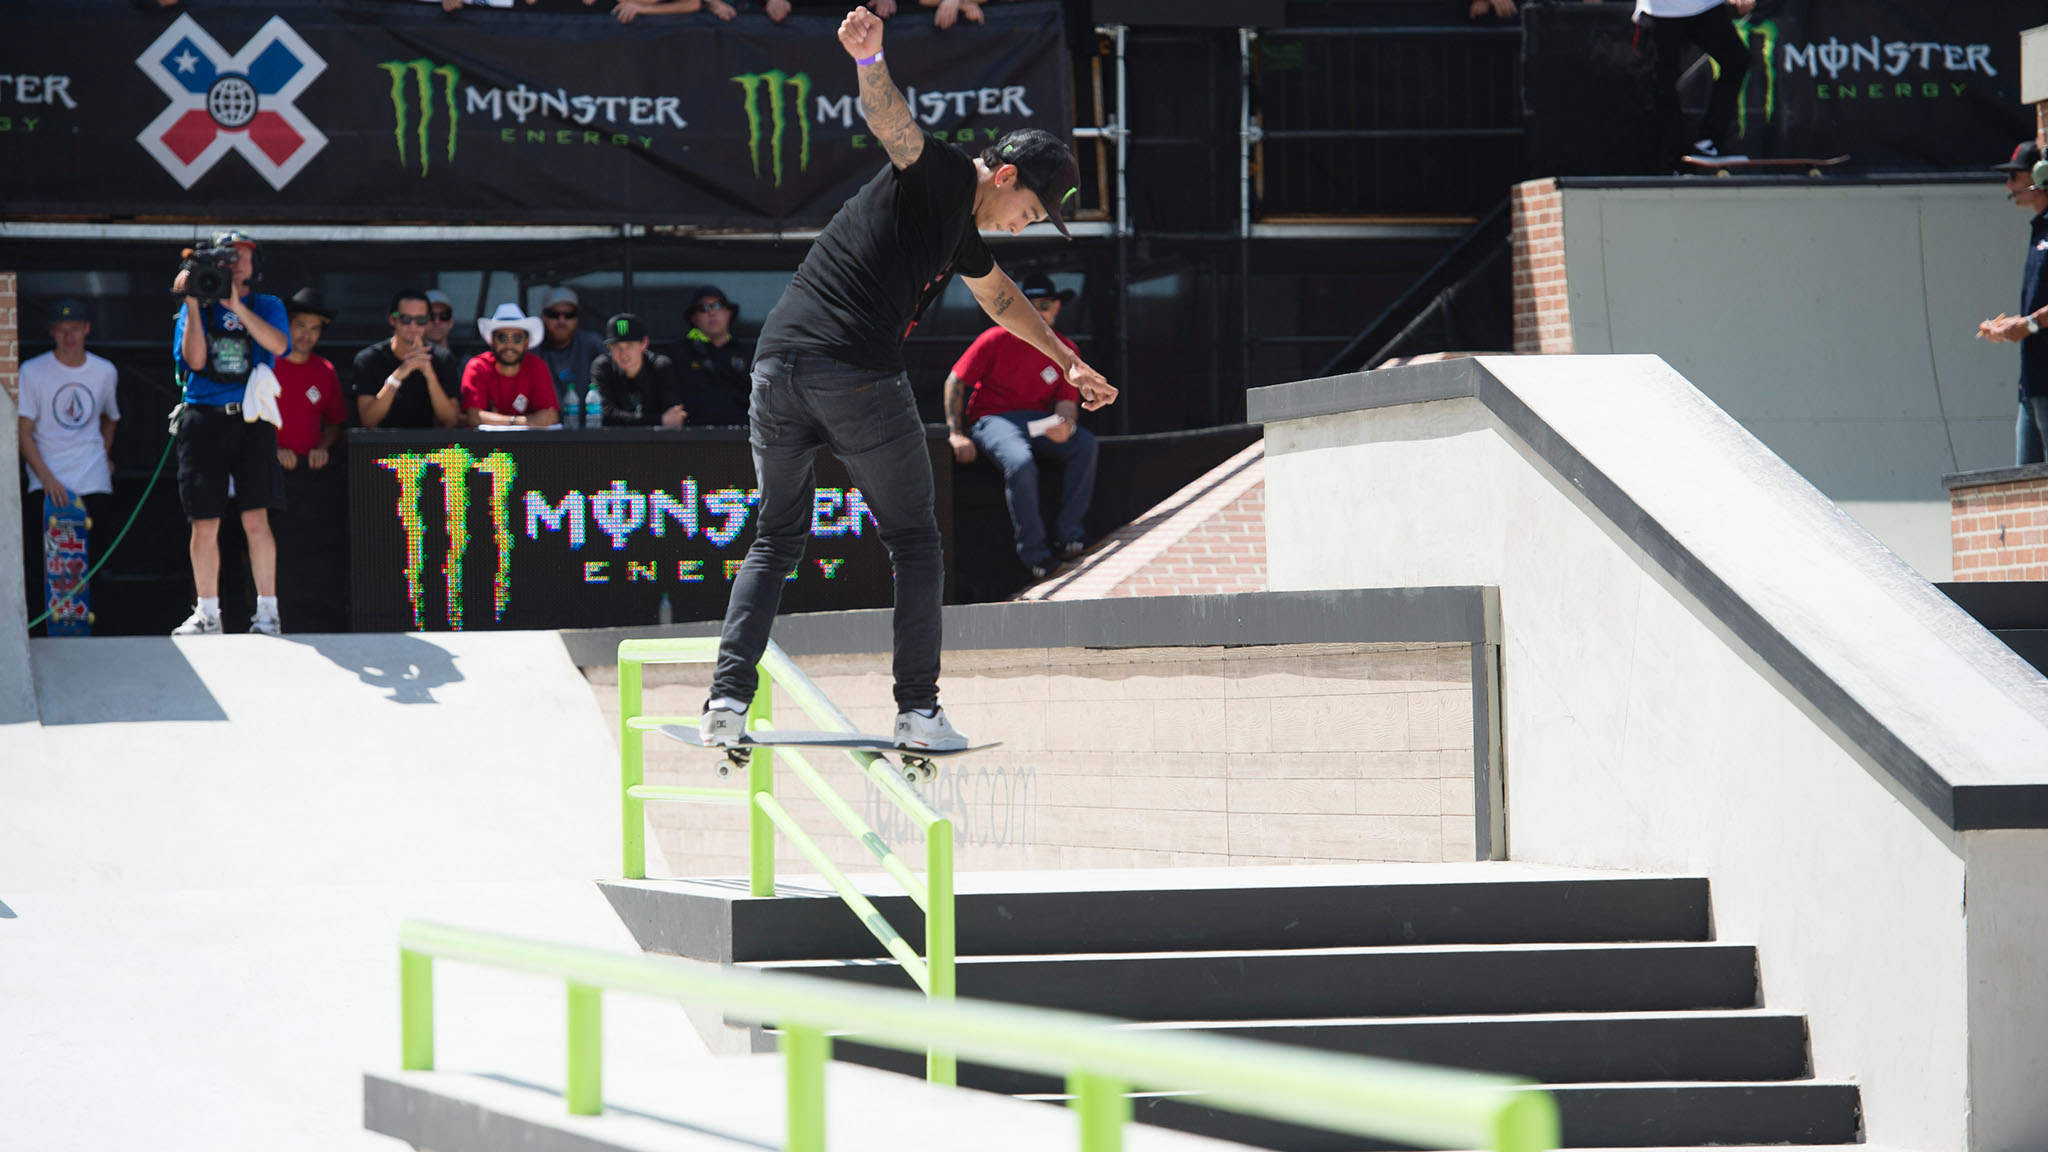 Men's Skateboard Street: Nyjah Huston